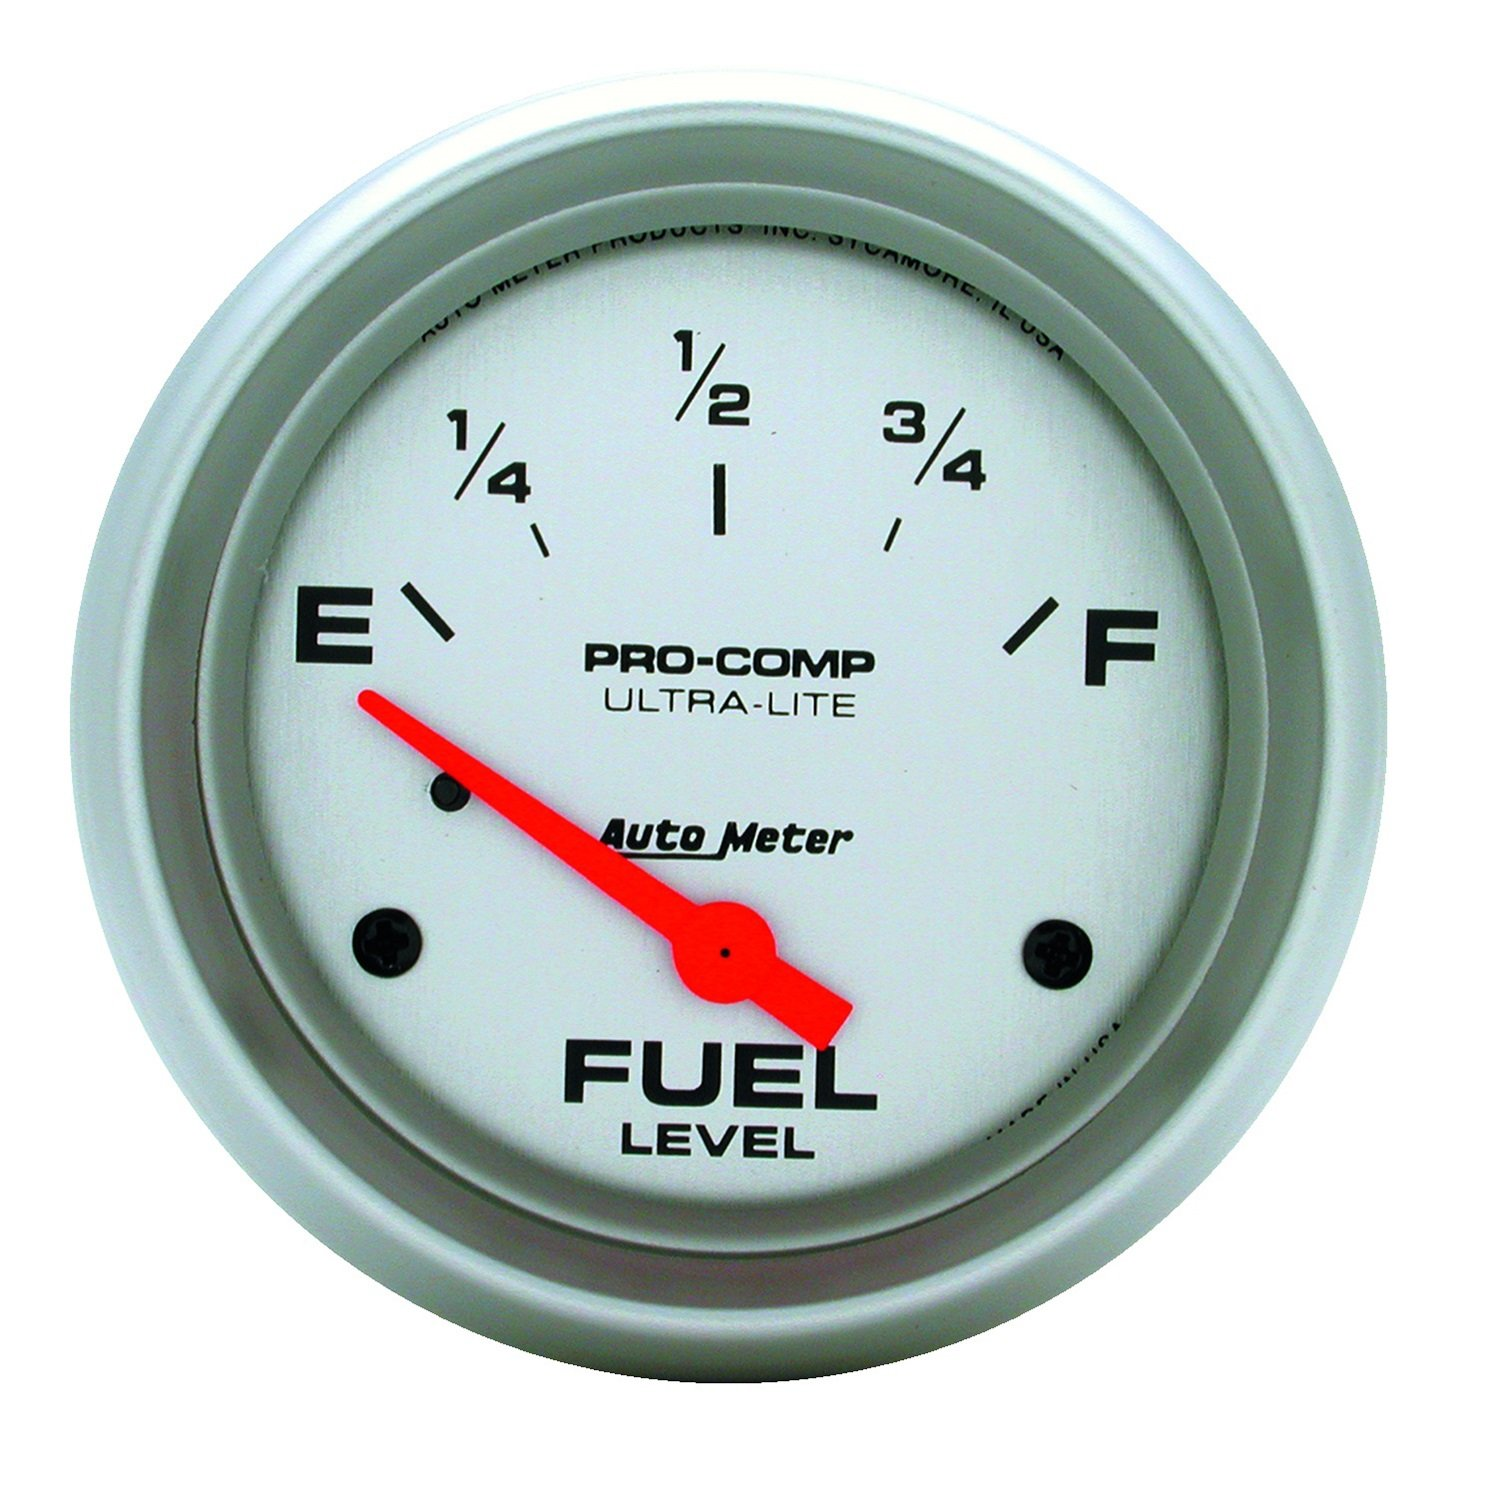 Auto Meter 4416 Ultra-Lite Electric Fuel Level Gauge